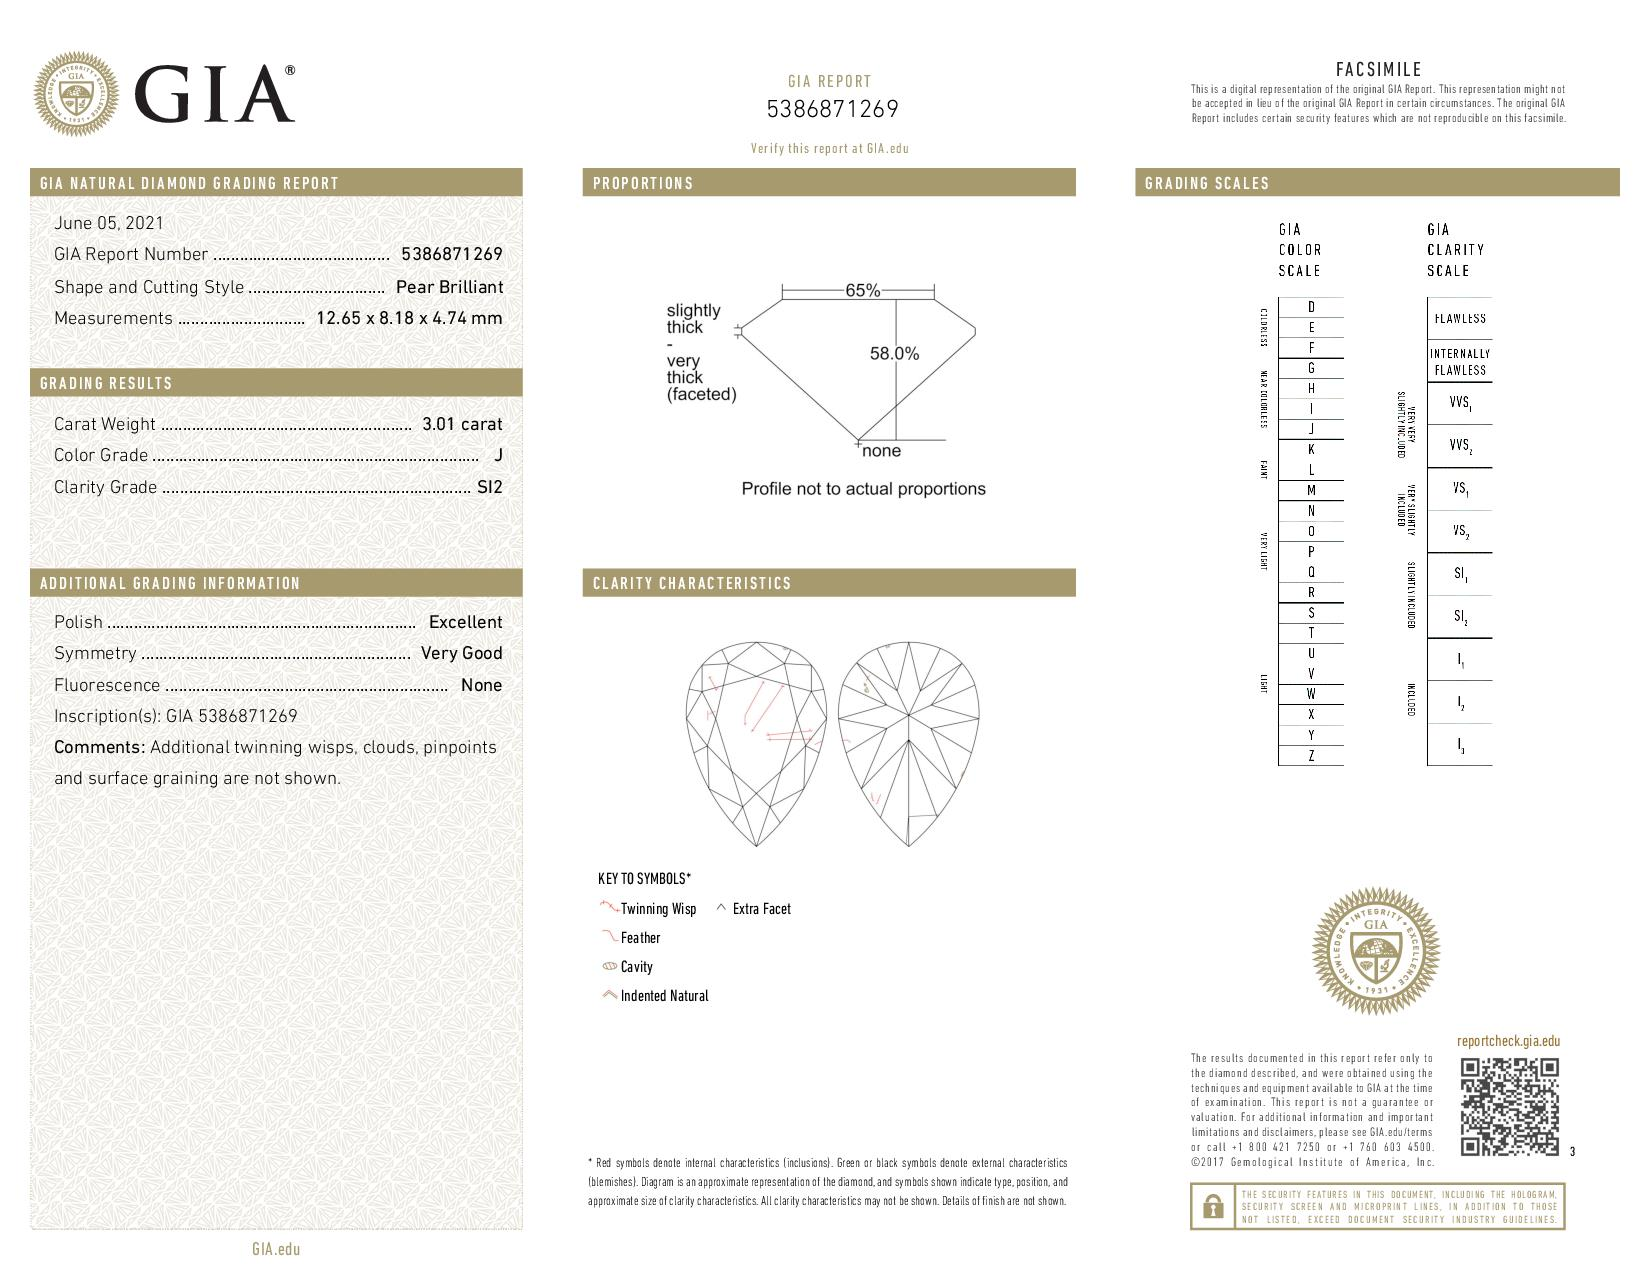 This is a 3.01 carat pear shape, J color, SI2 clarity natural diamond accompanied by a GIA grading report.